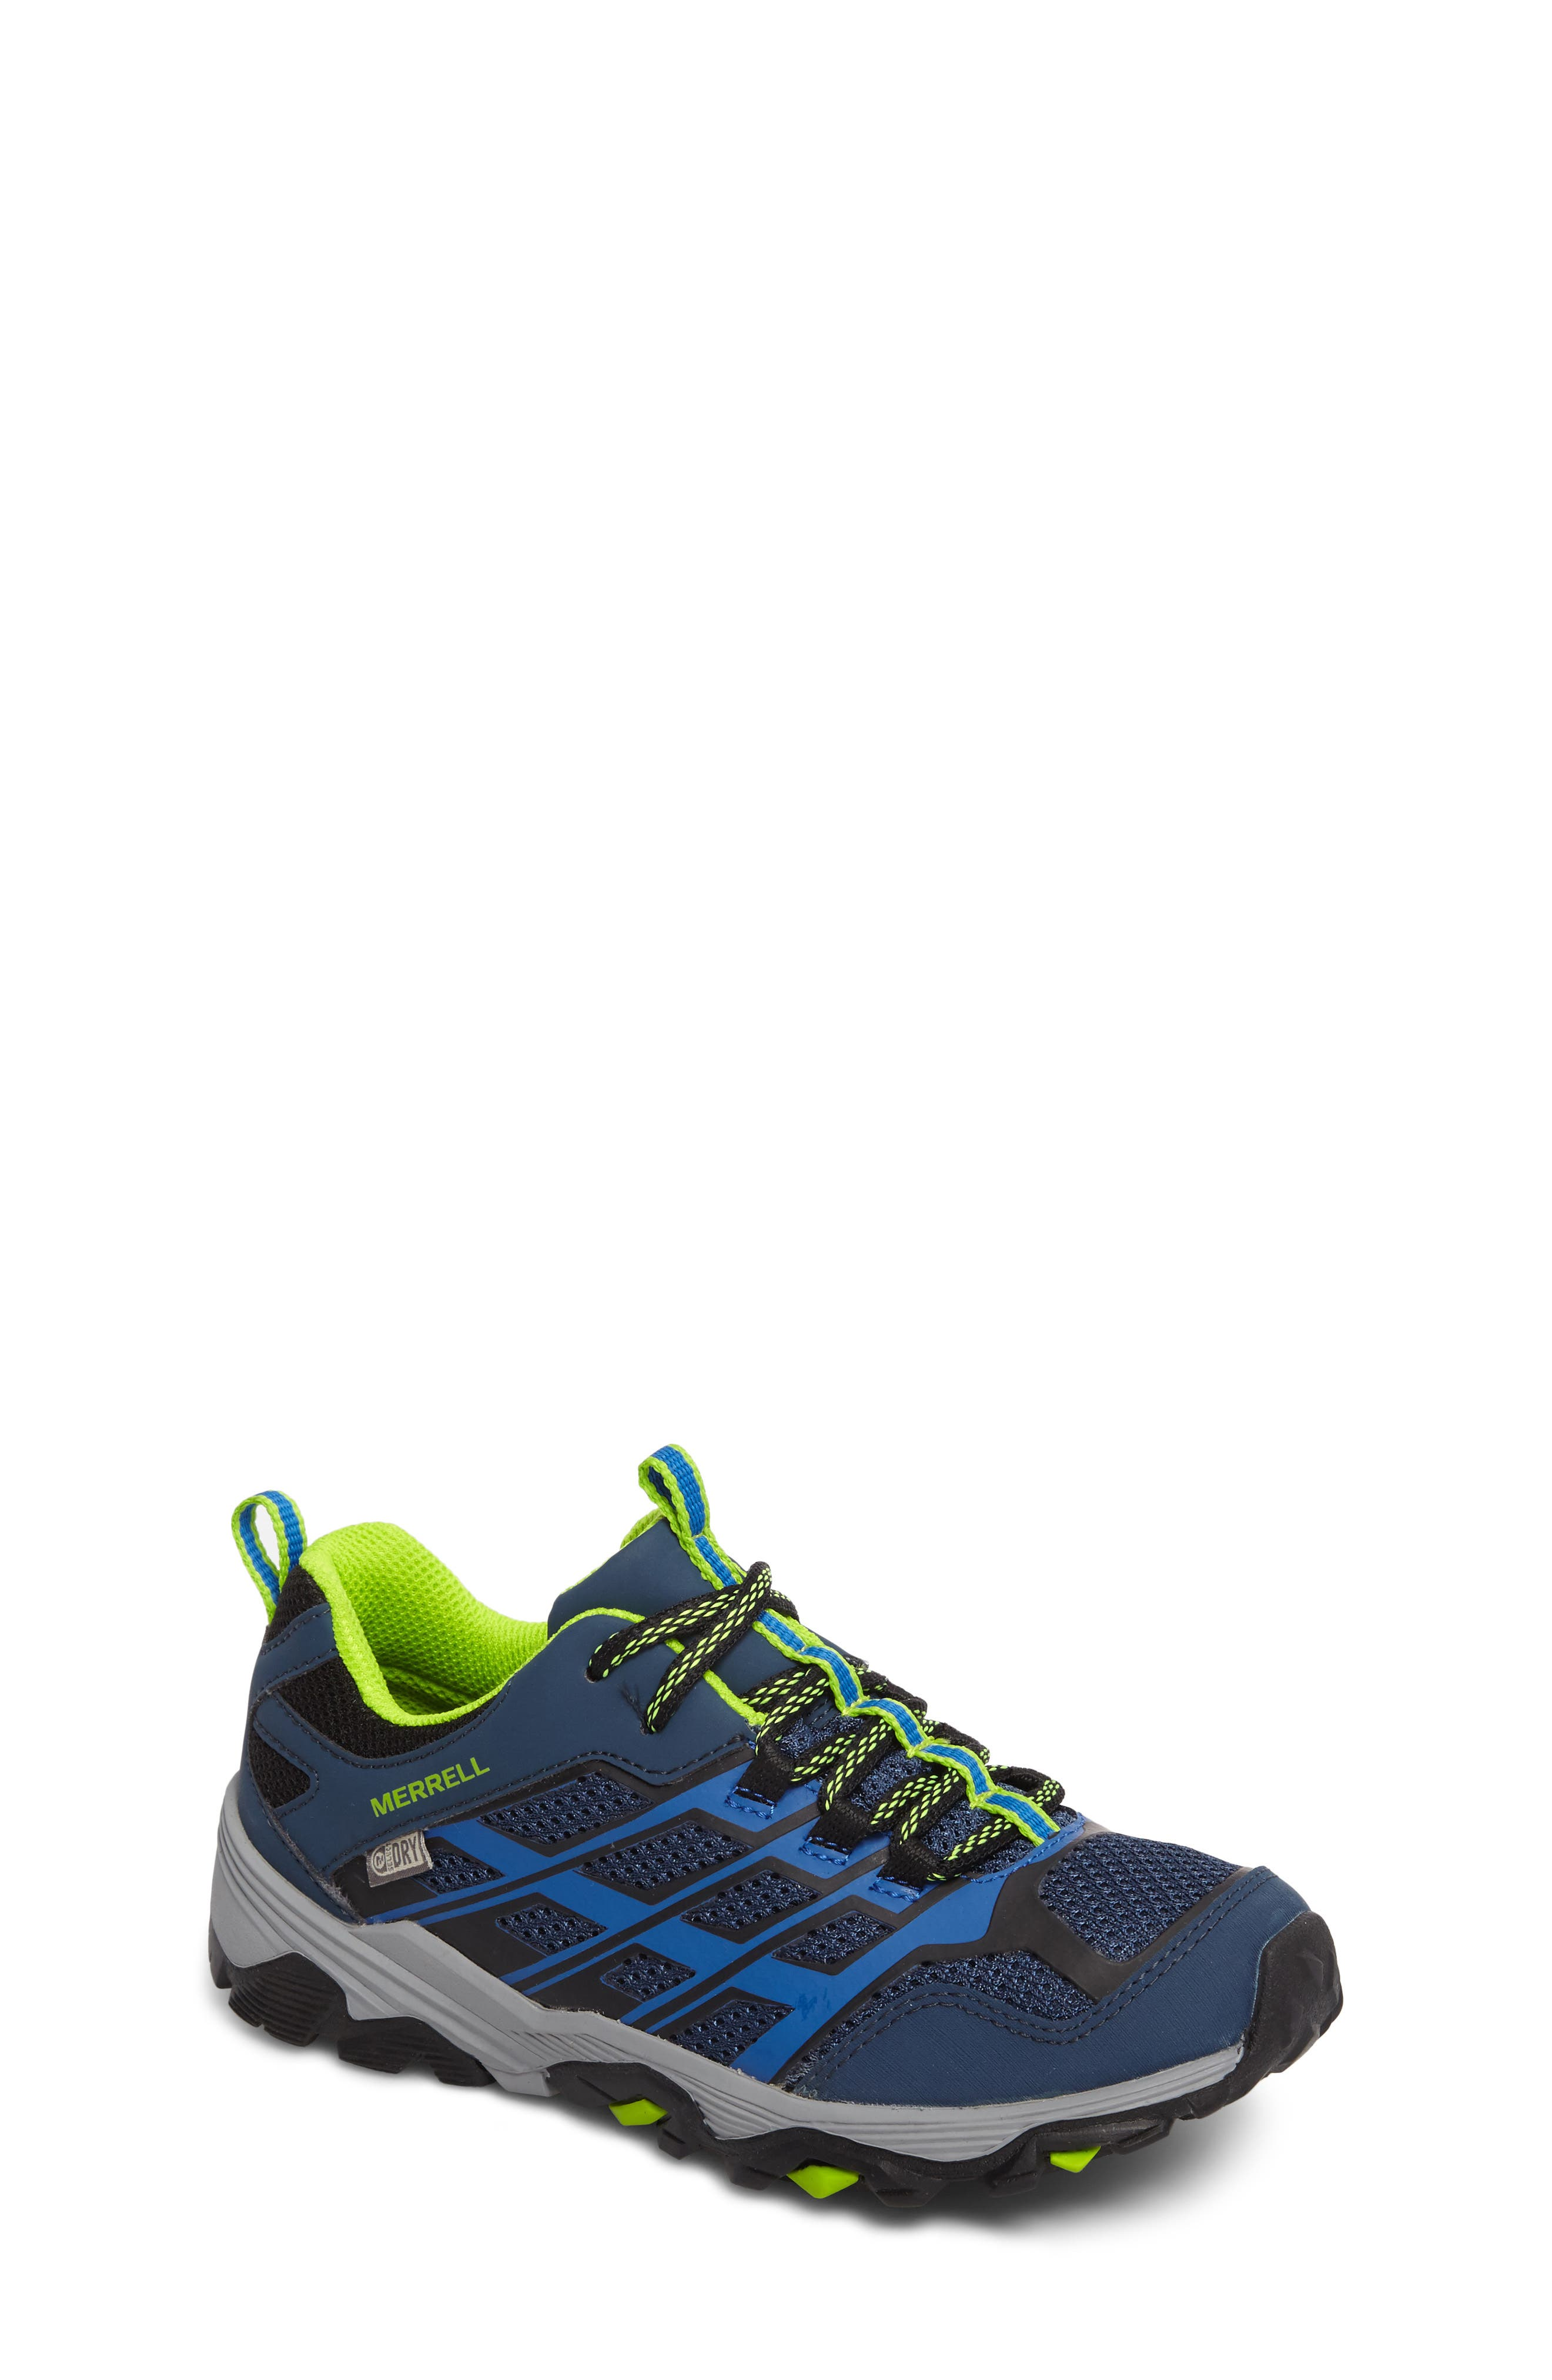 Moab FST Polar Low Waterproof Sneaker,                             Main thumbnail 1, color,                             Navy/ Blue